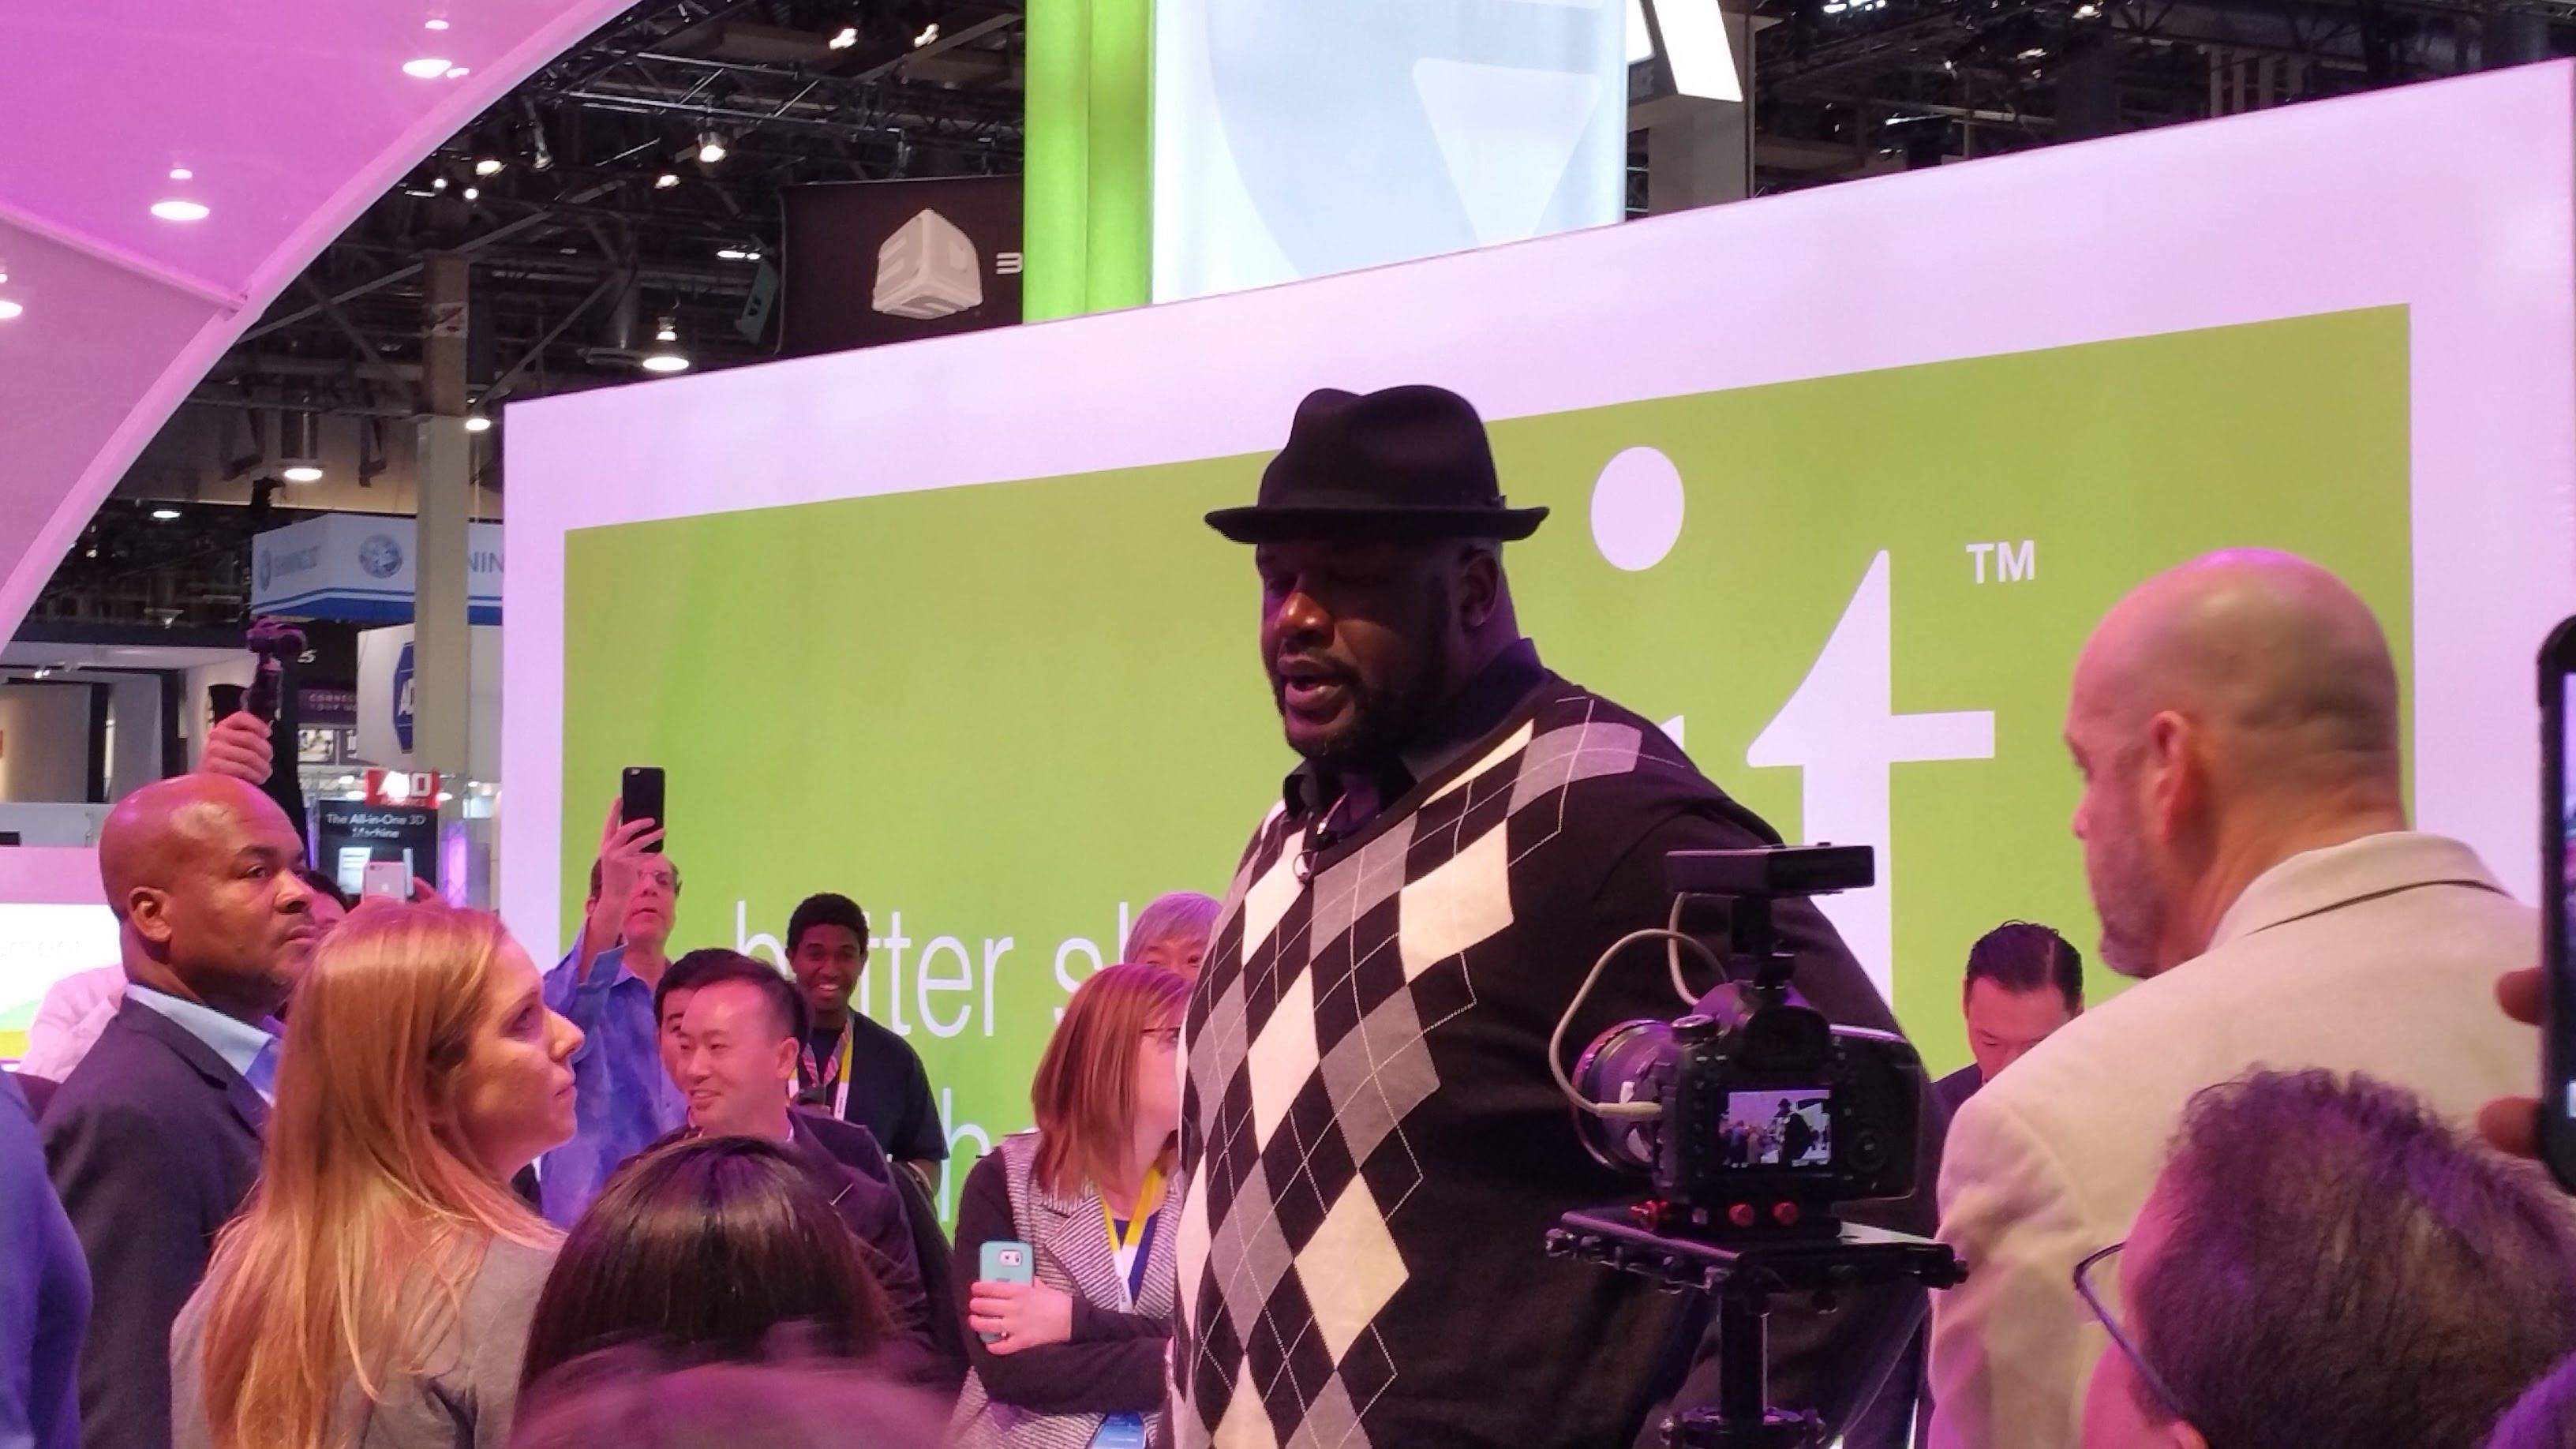 Shaq standing in a crowd in front of a green banner at CES 2016